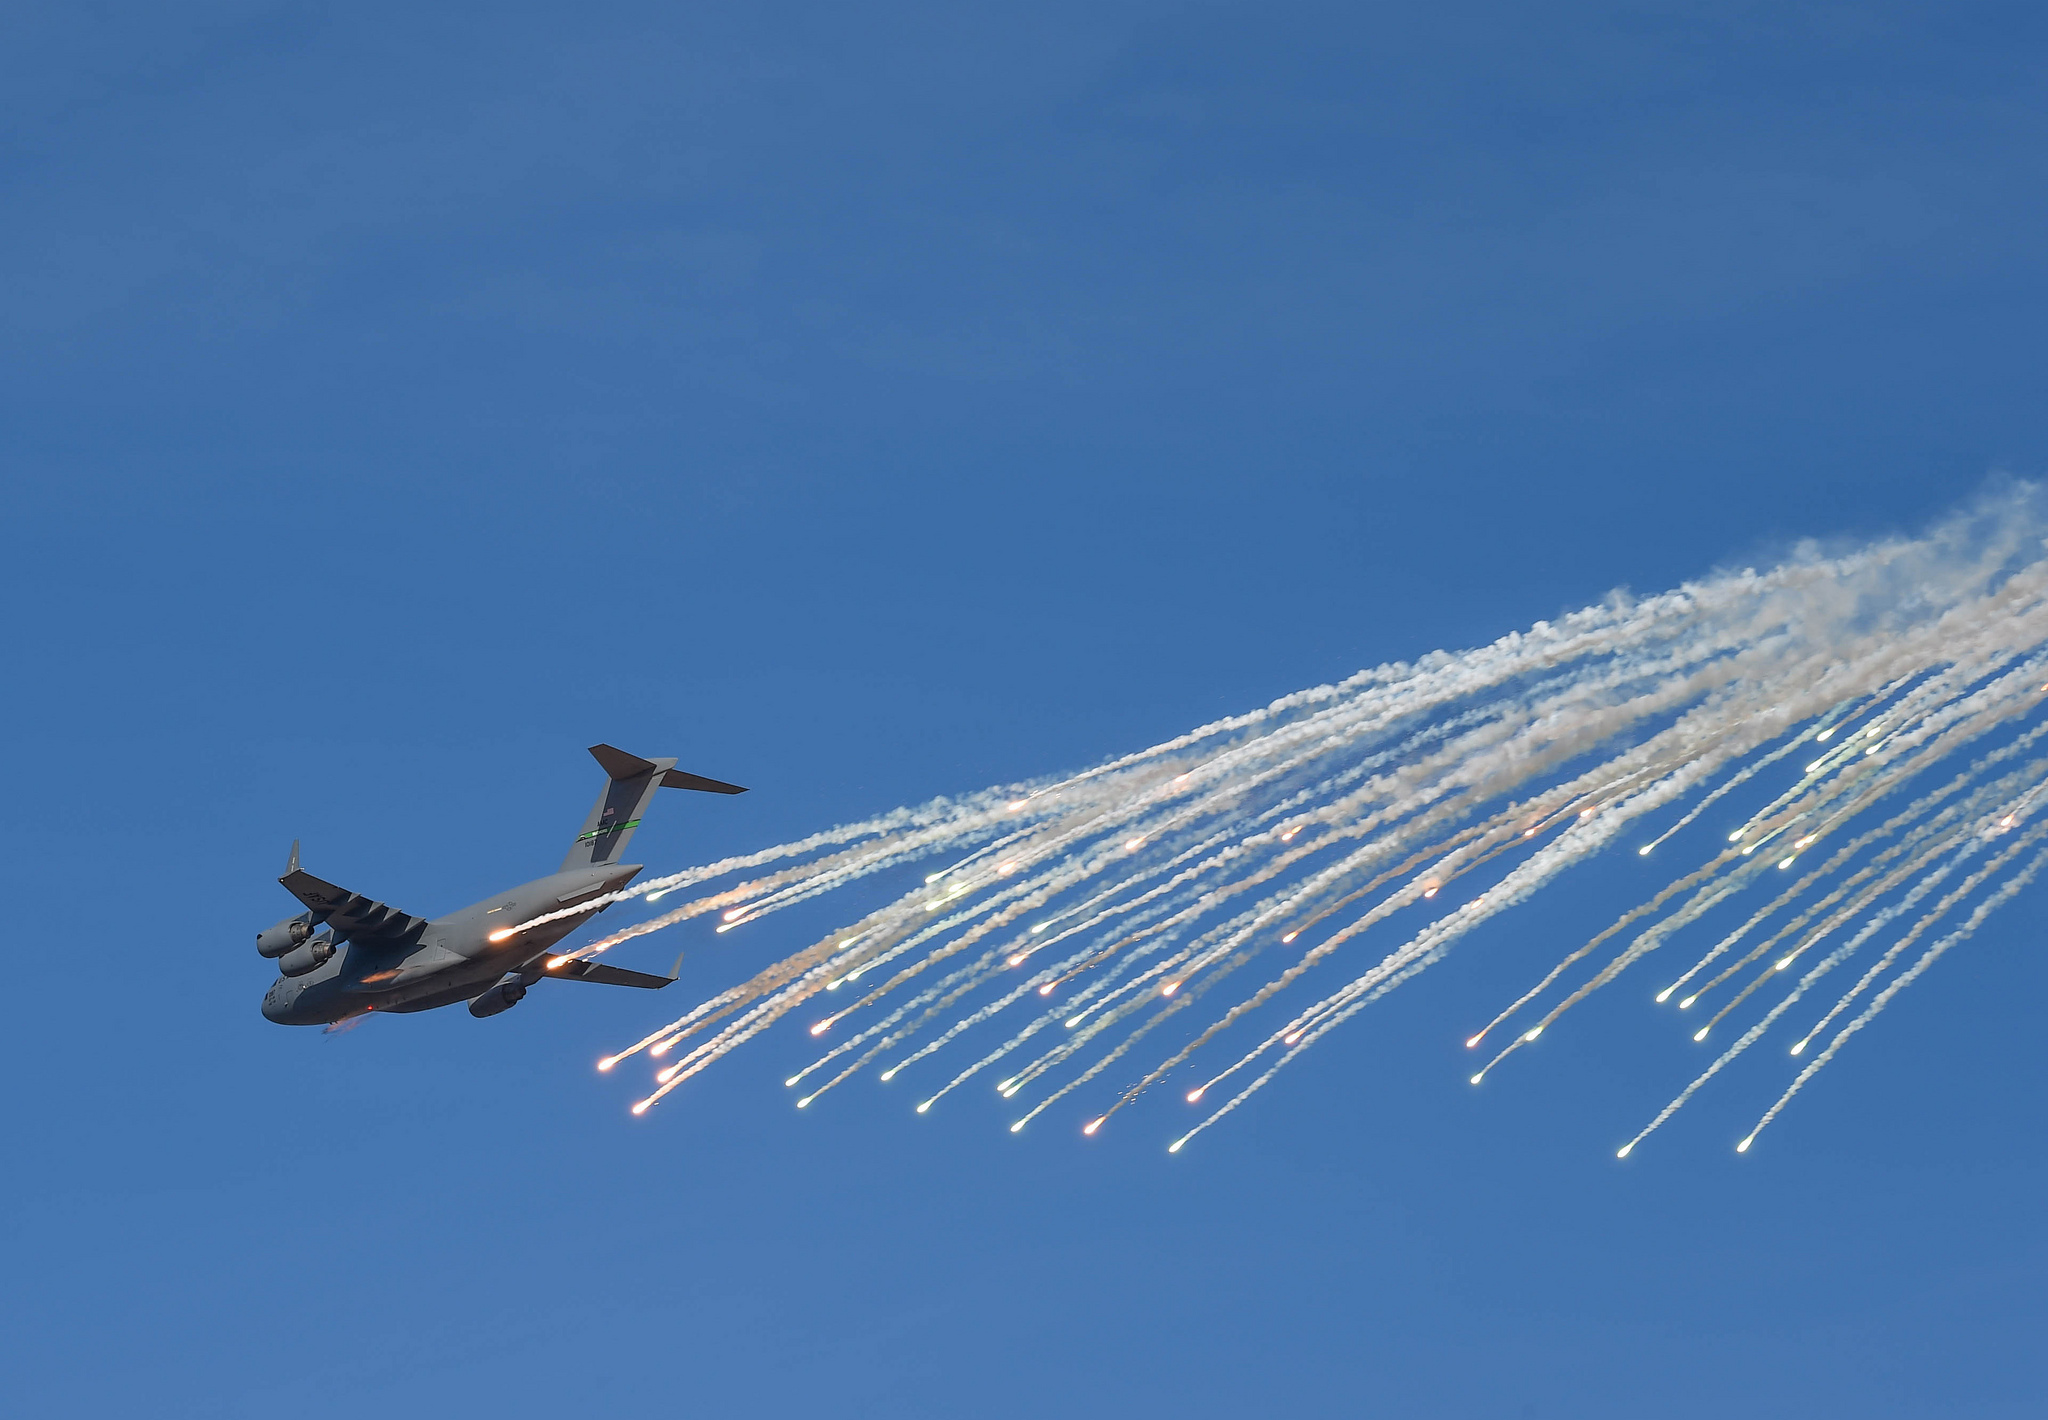 A C-17 Globemaster III, from Joint Base Lewis-McChord, Wash., releases flares above the Selah Airstrip over Yakima Training Center, Nov. 15, 2018. (Senior Airman Tryphena Mayhugh/Air Force)